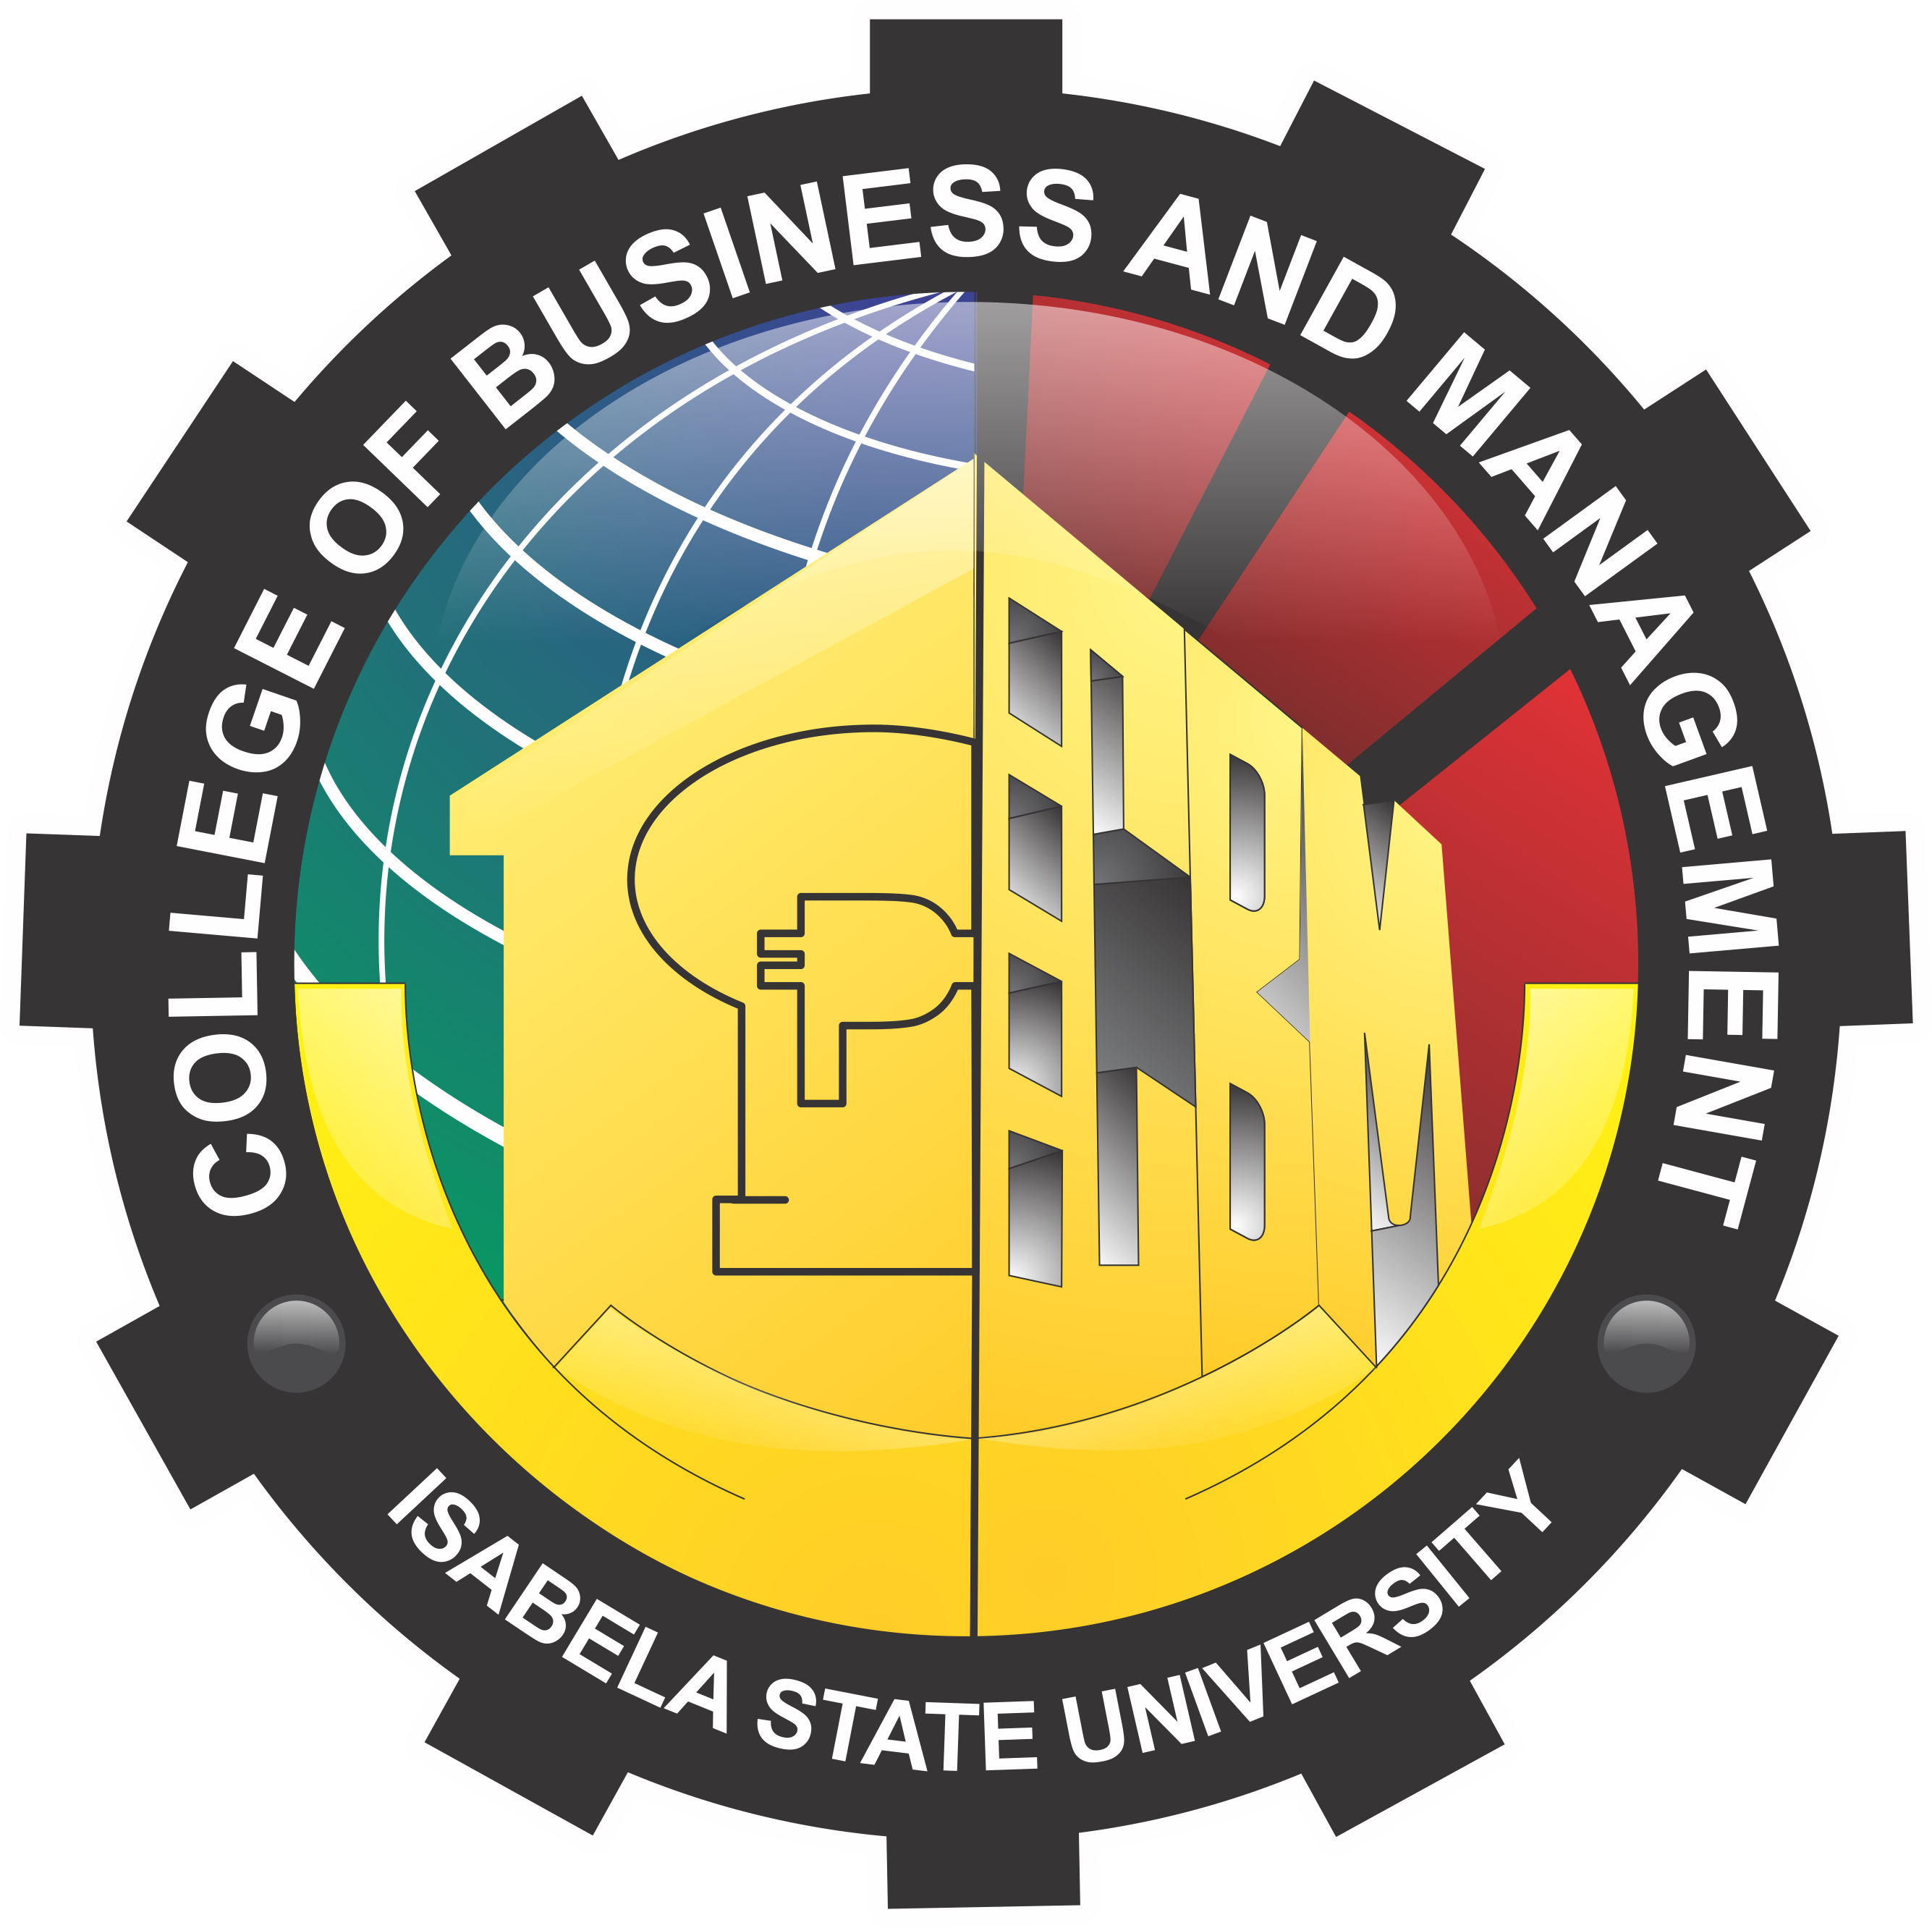 College of Bussiness and Management